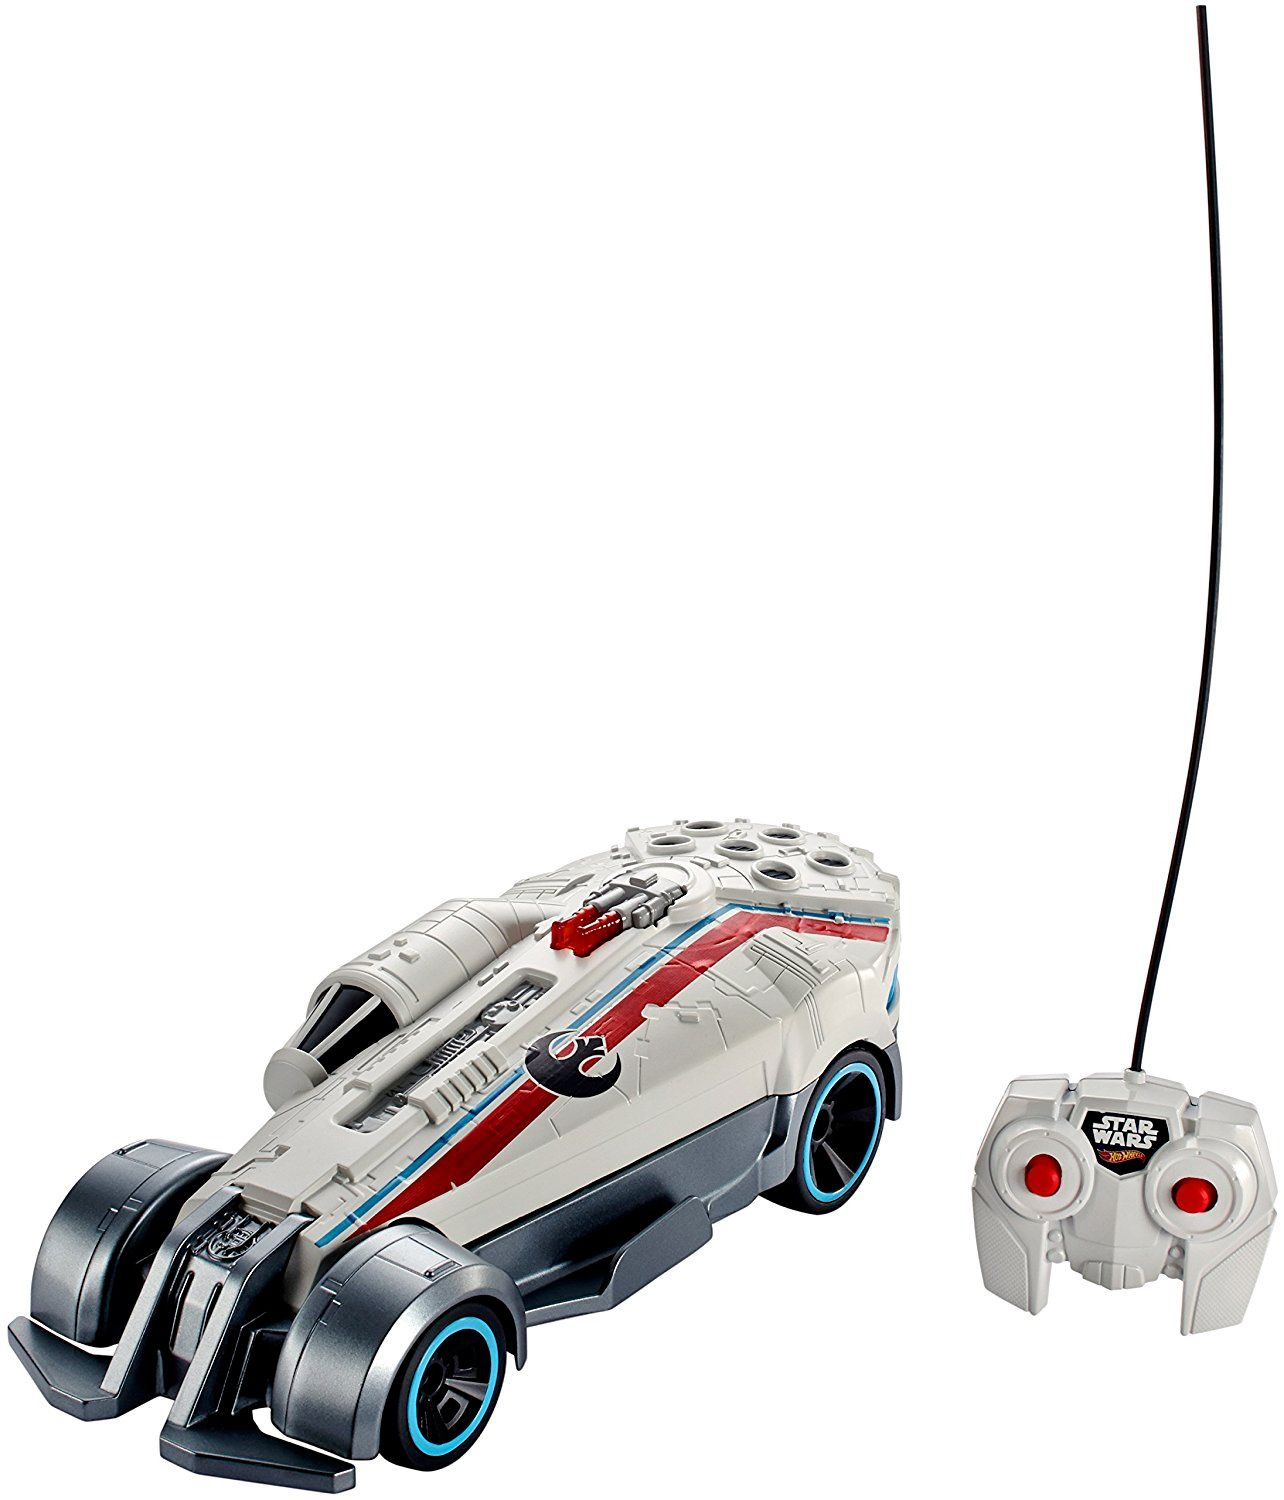 Carro-Controle-Remoto-Hot-Wheels-Star-Wars-Carships-Millenium-Falcon-Remote-Control-Vehicle-02